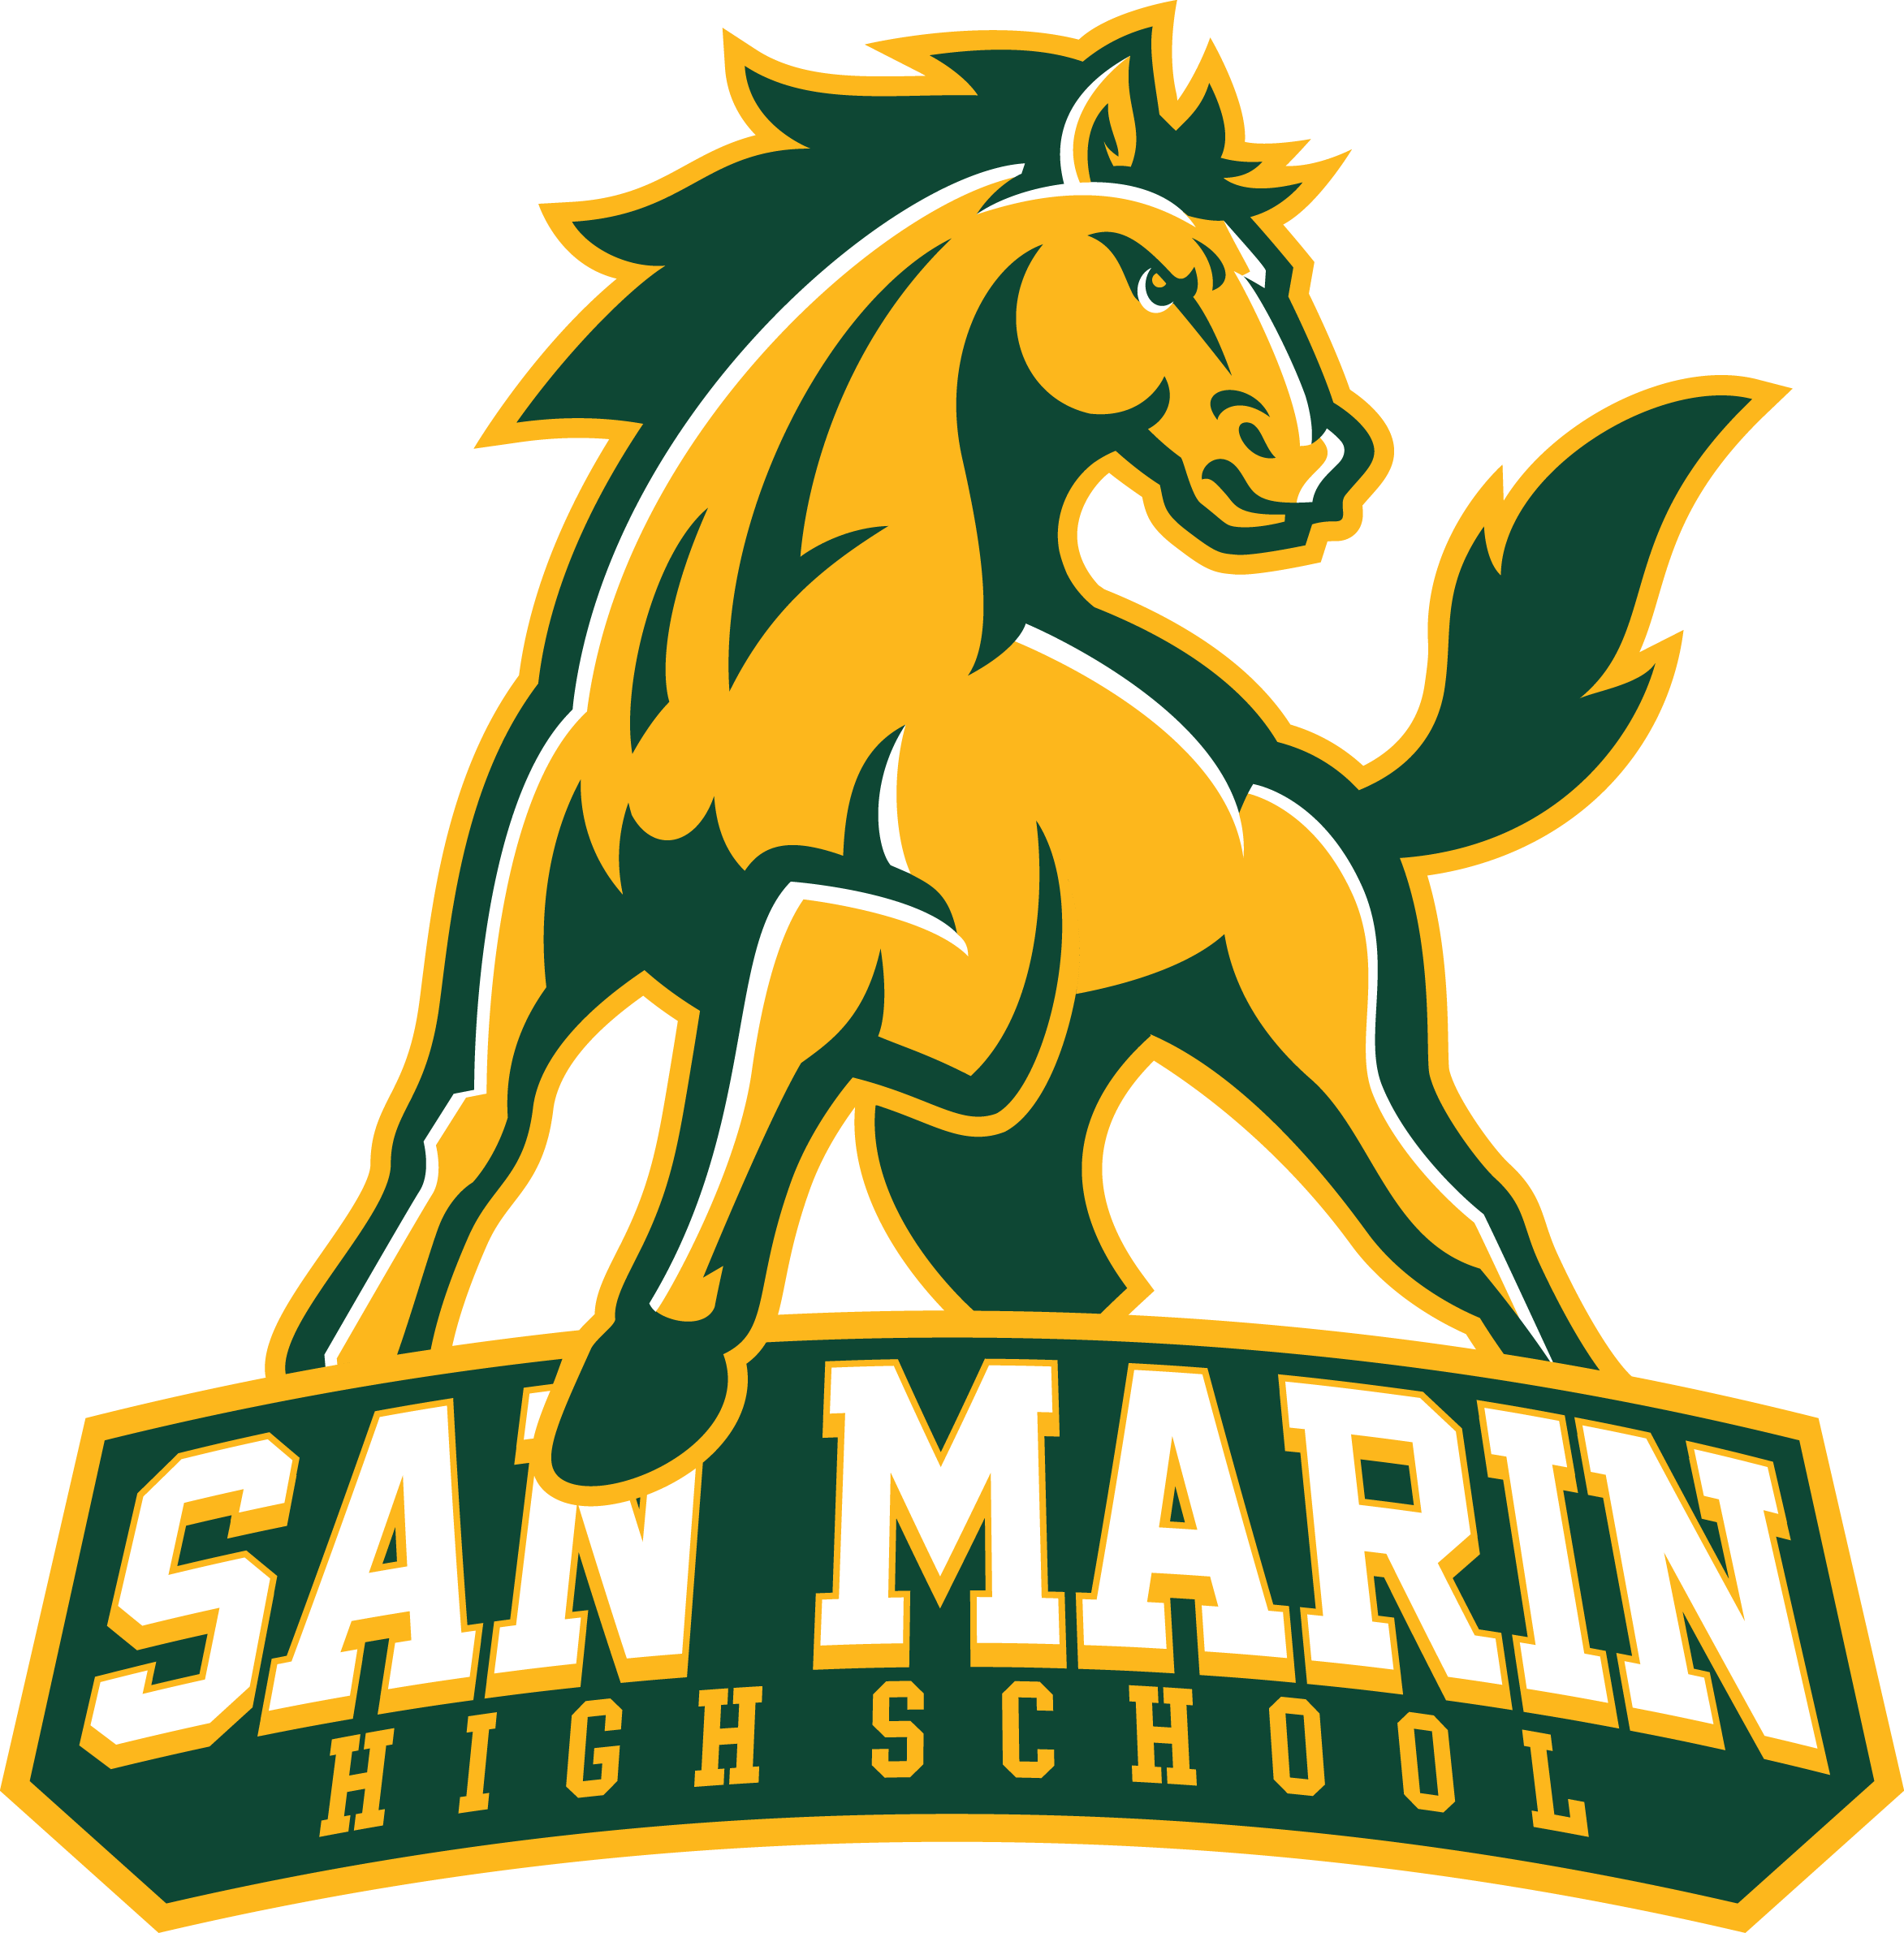 San Marin High School logo